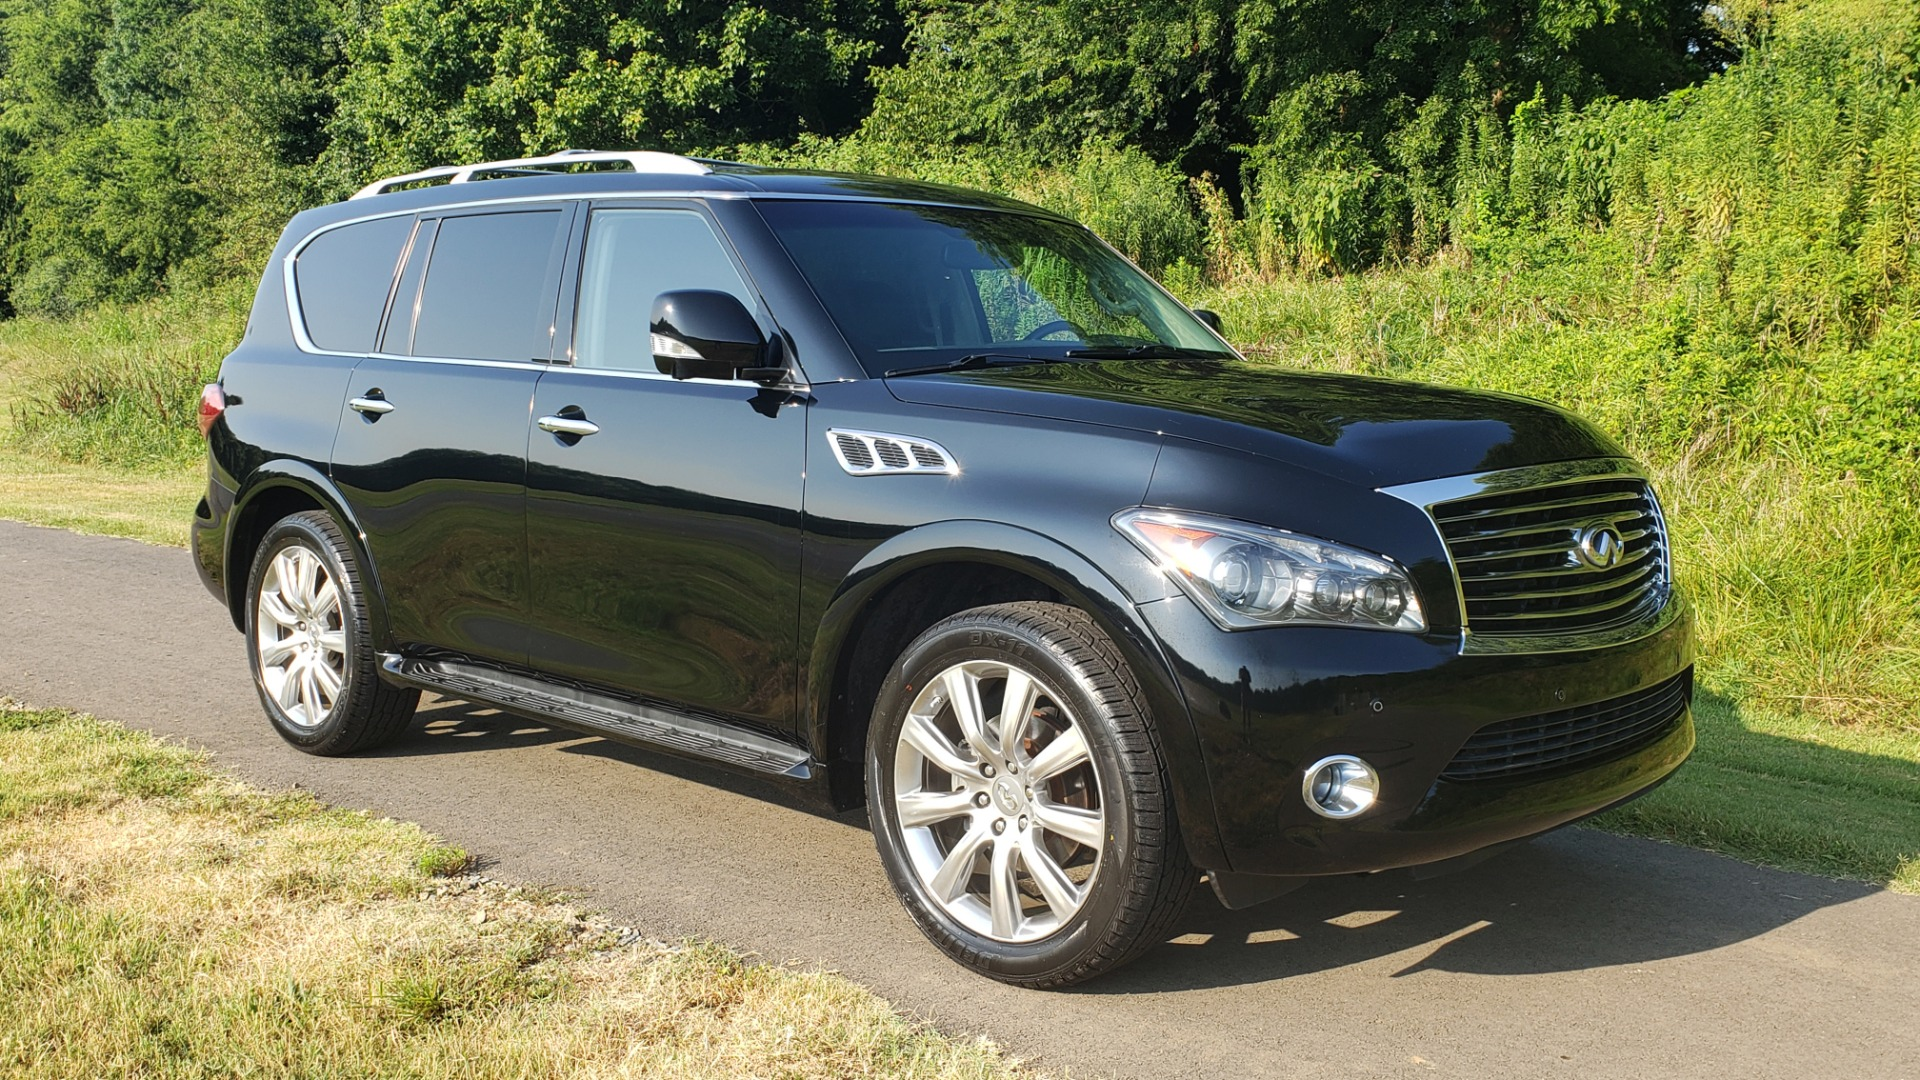 Used 2013 INFINITI QX56 NAV / SUNROOF / BOSE / THEATER / 3-ROW / REARVIEW for sale $21,495 at Formula Imports in Charlotte NC 28227 5